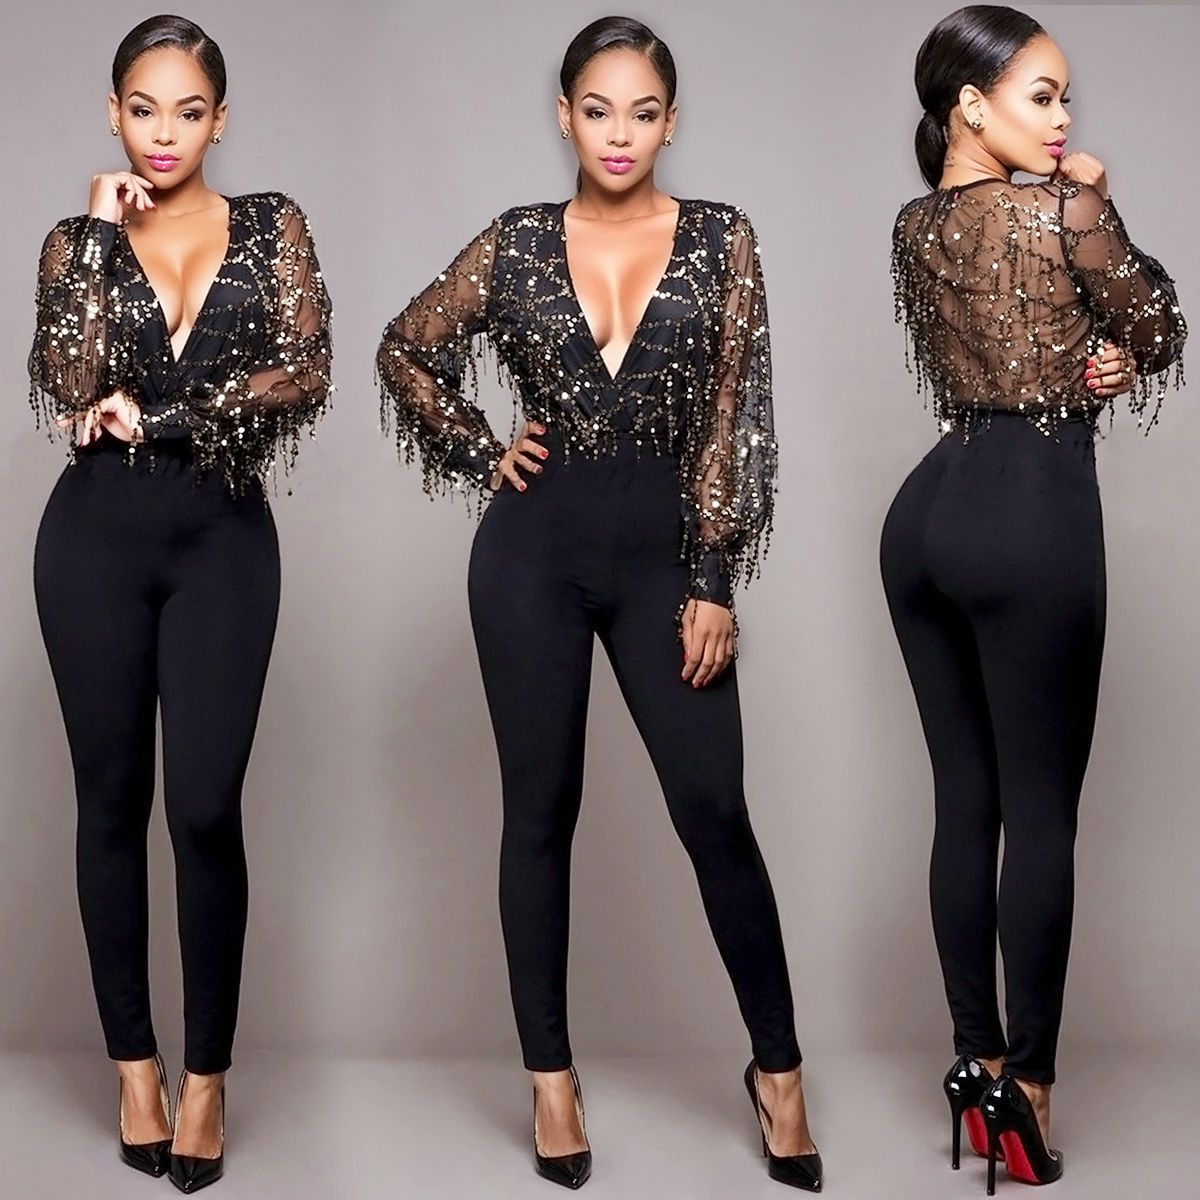 5f2f32fcbe Women Clubwear V Neck Sequin Playsuit Bodycon Party Jumpsuit Romper Trousers